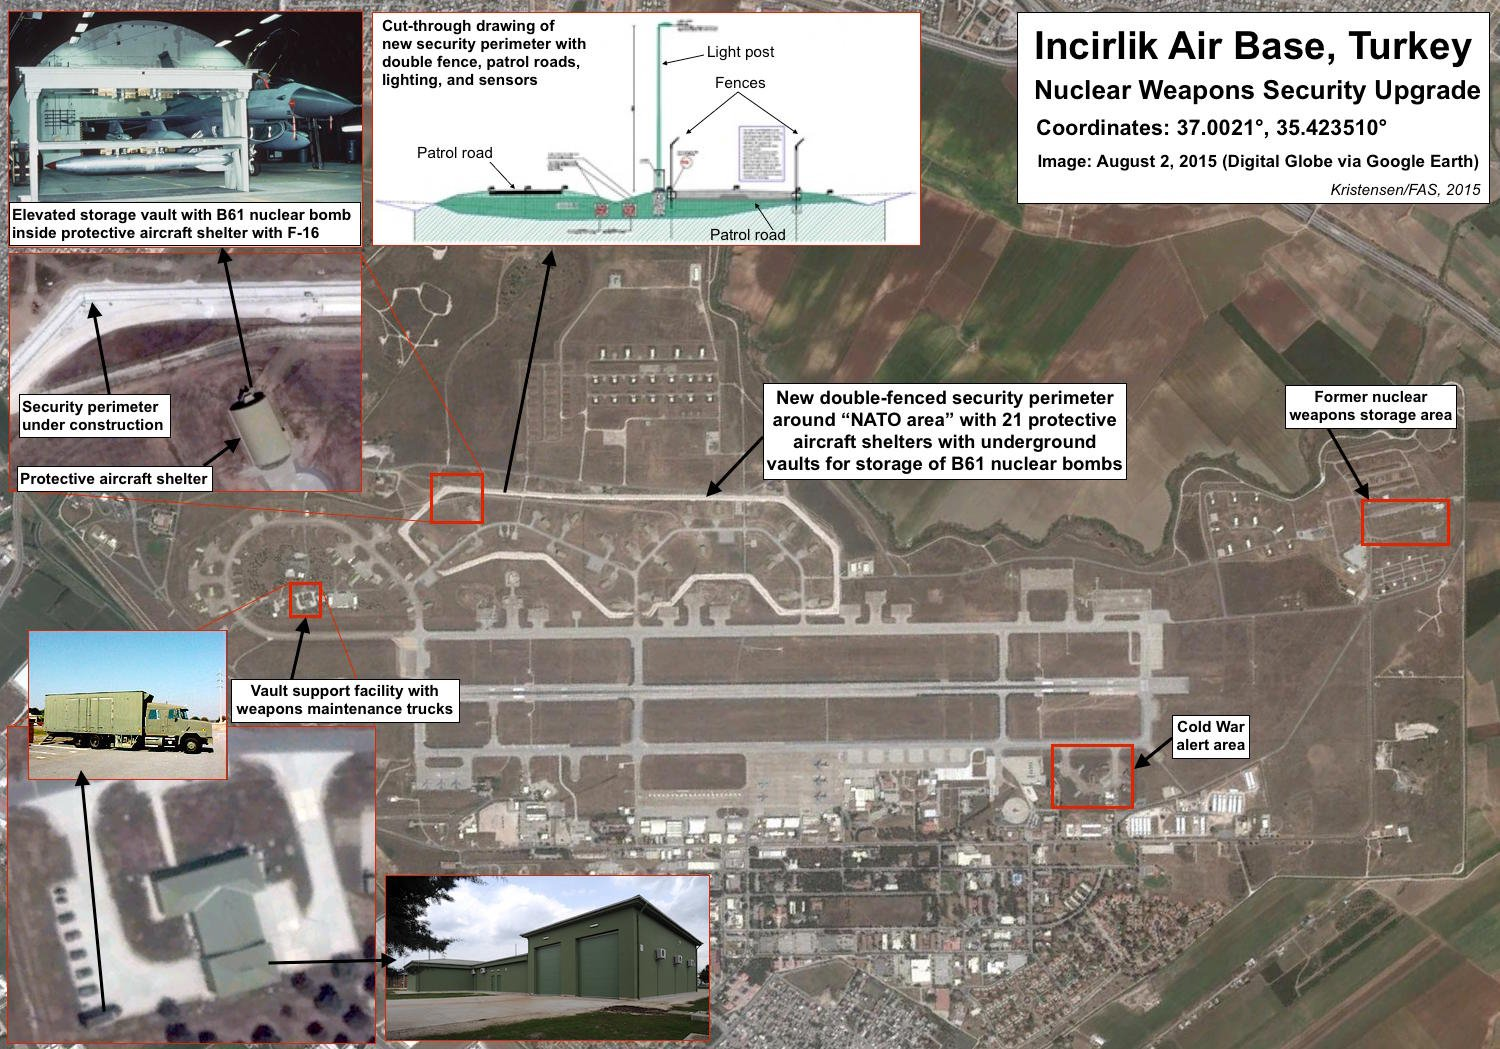 US Considering Ways To Remove B61 Nuclear Bombs From Incirlik Air Base, Turkey: US Media